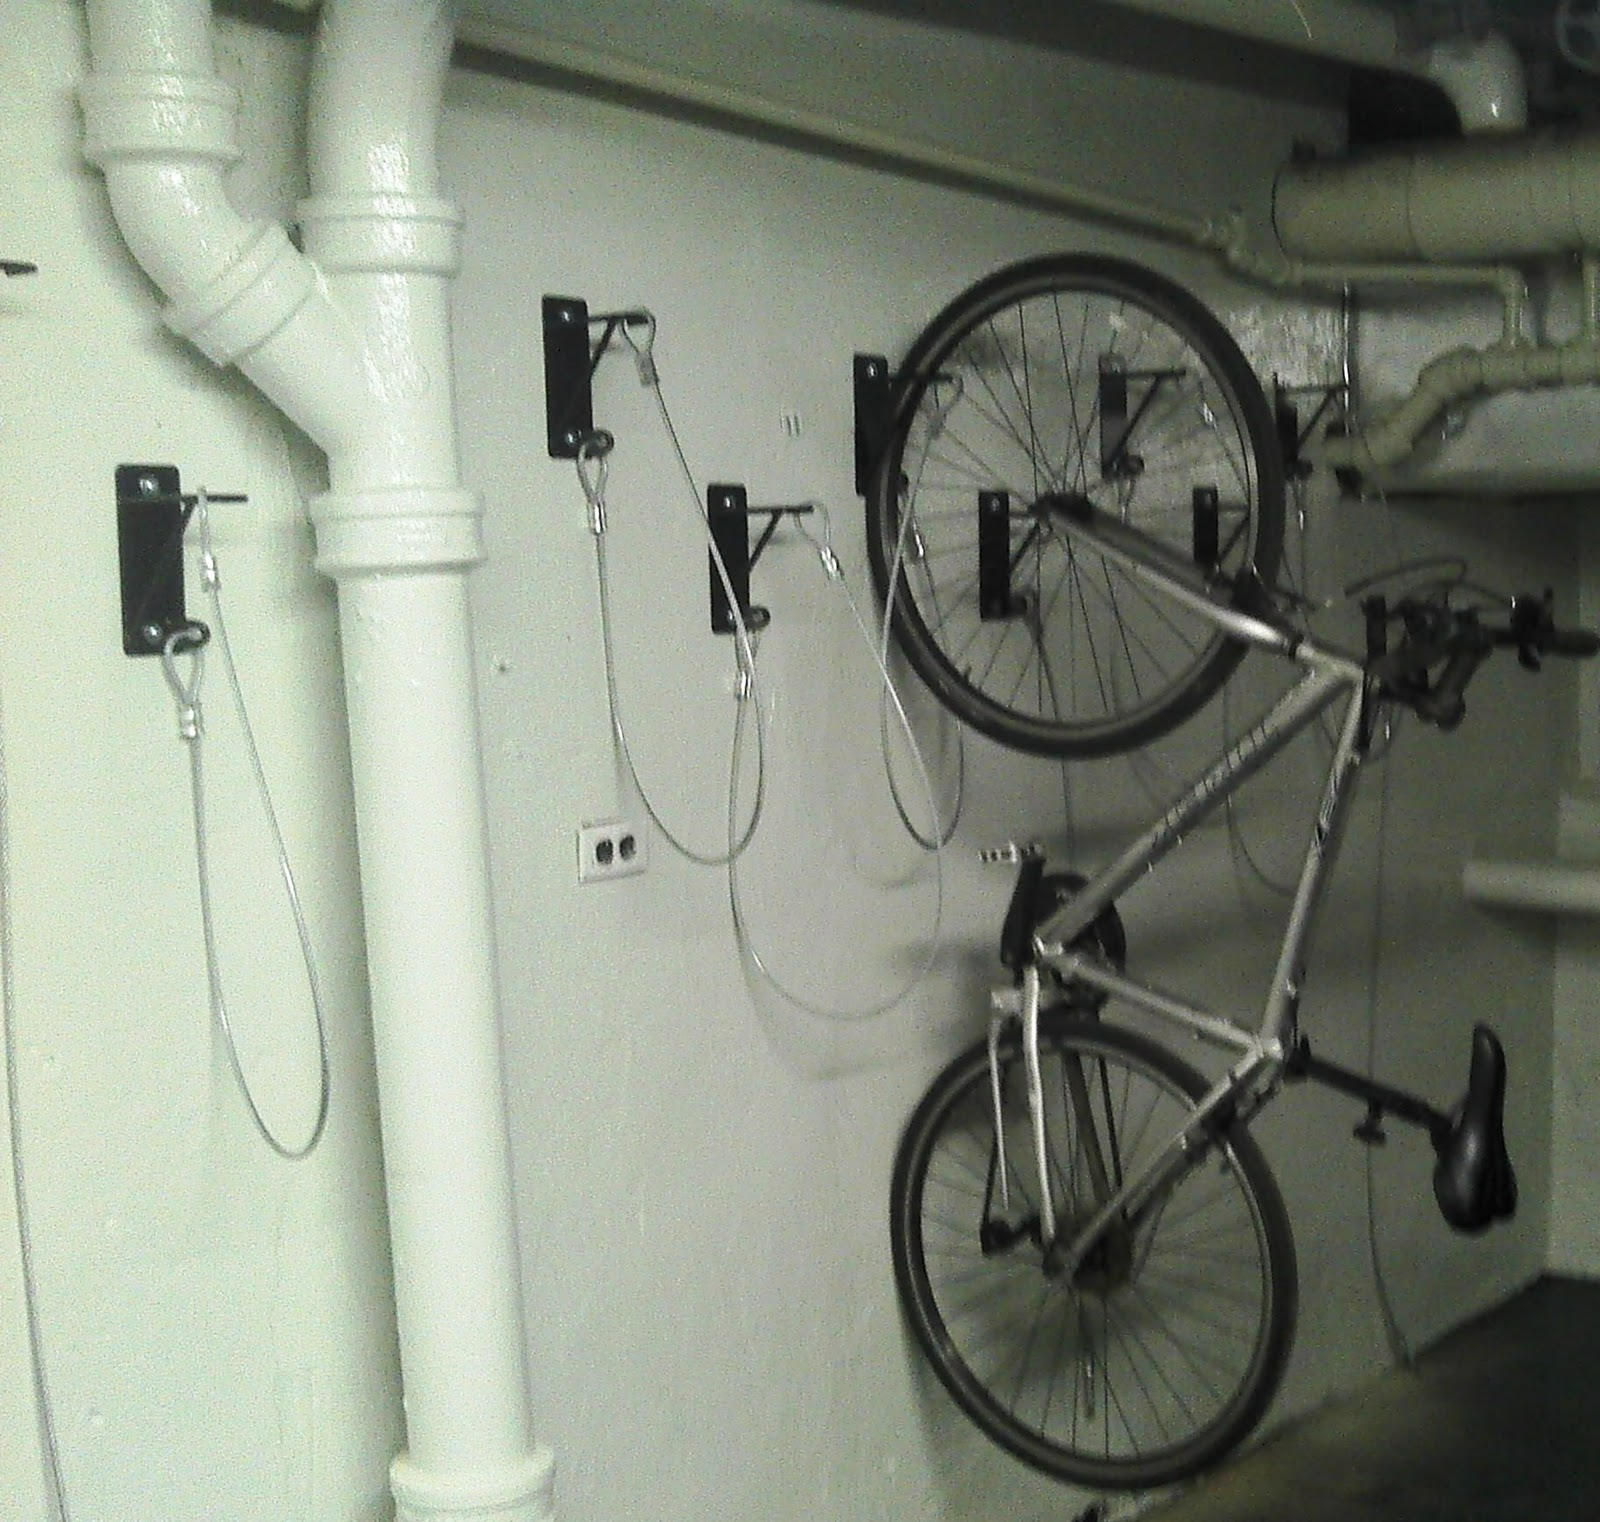 New Bike Racks Generate Excitement For Nyc Buildings By Eliminating Cramped Rooms And Generating Income